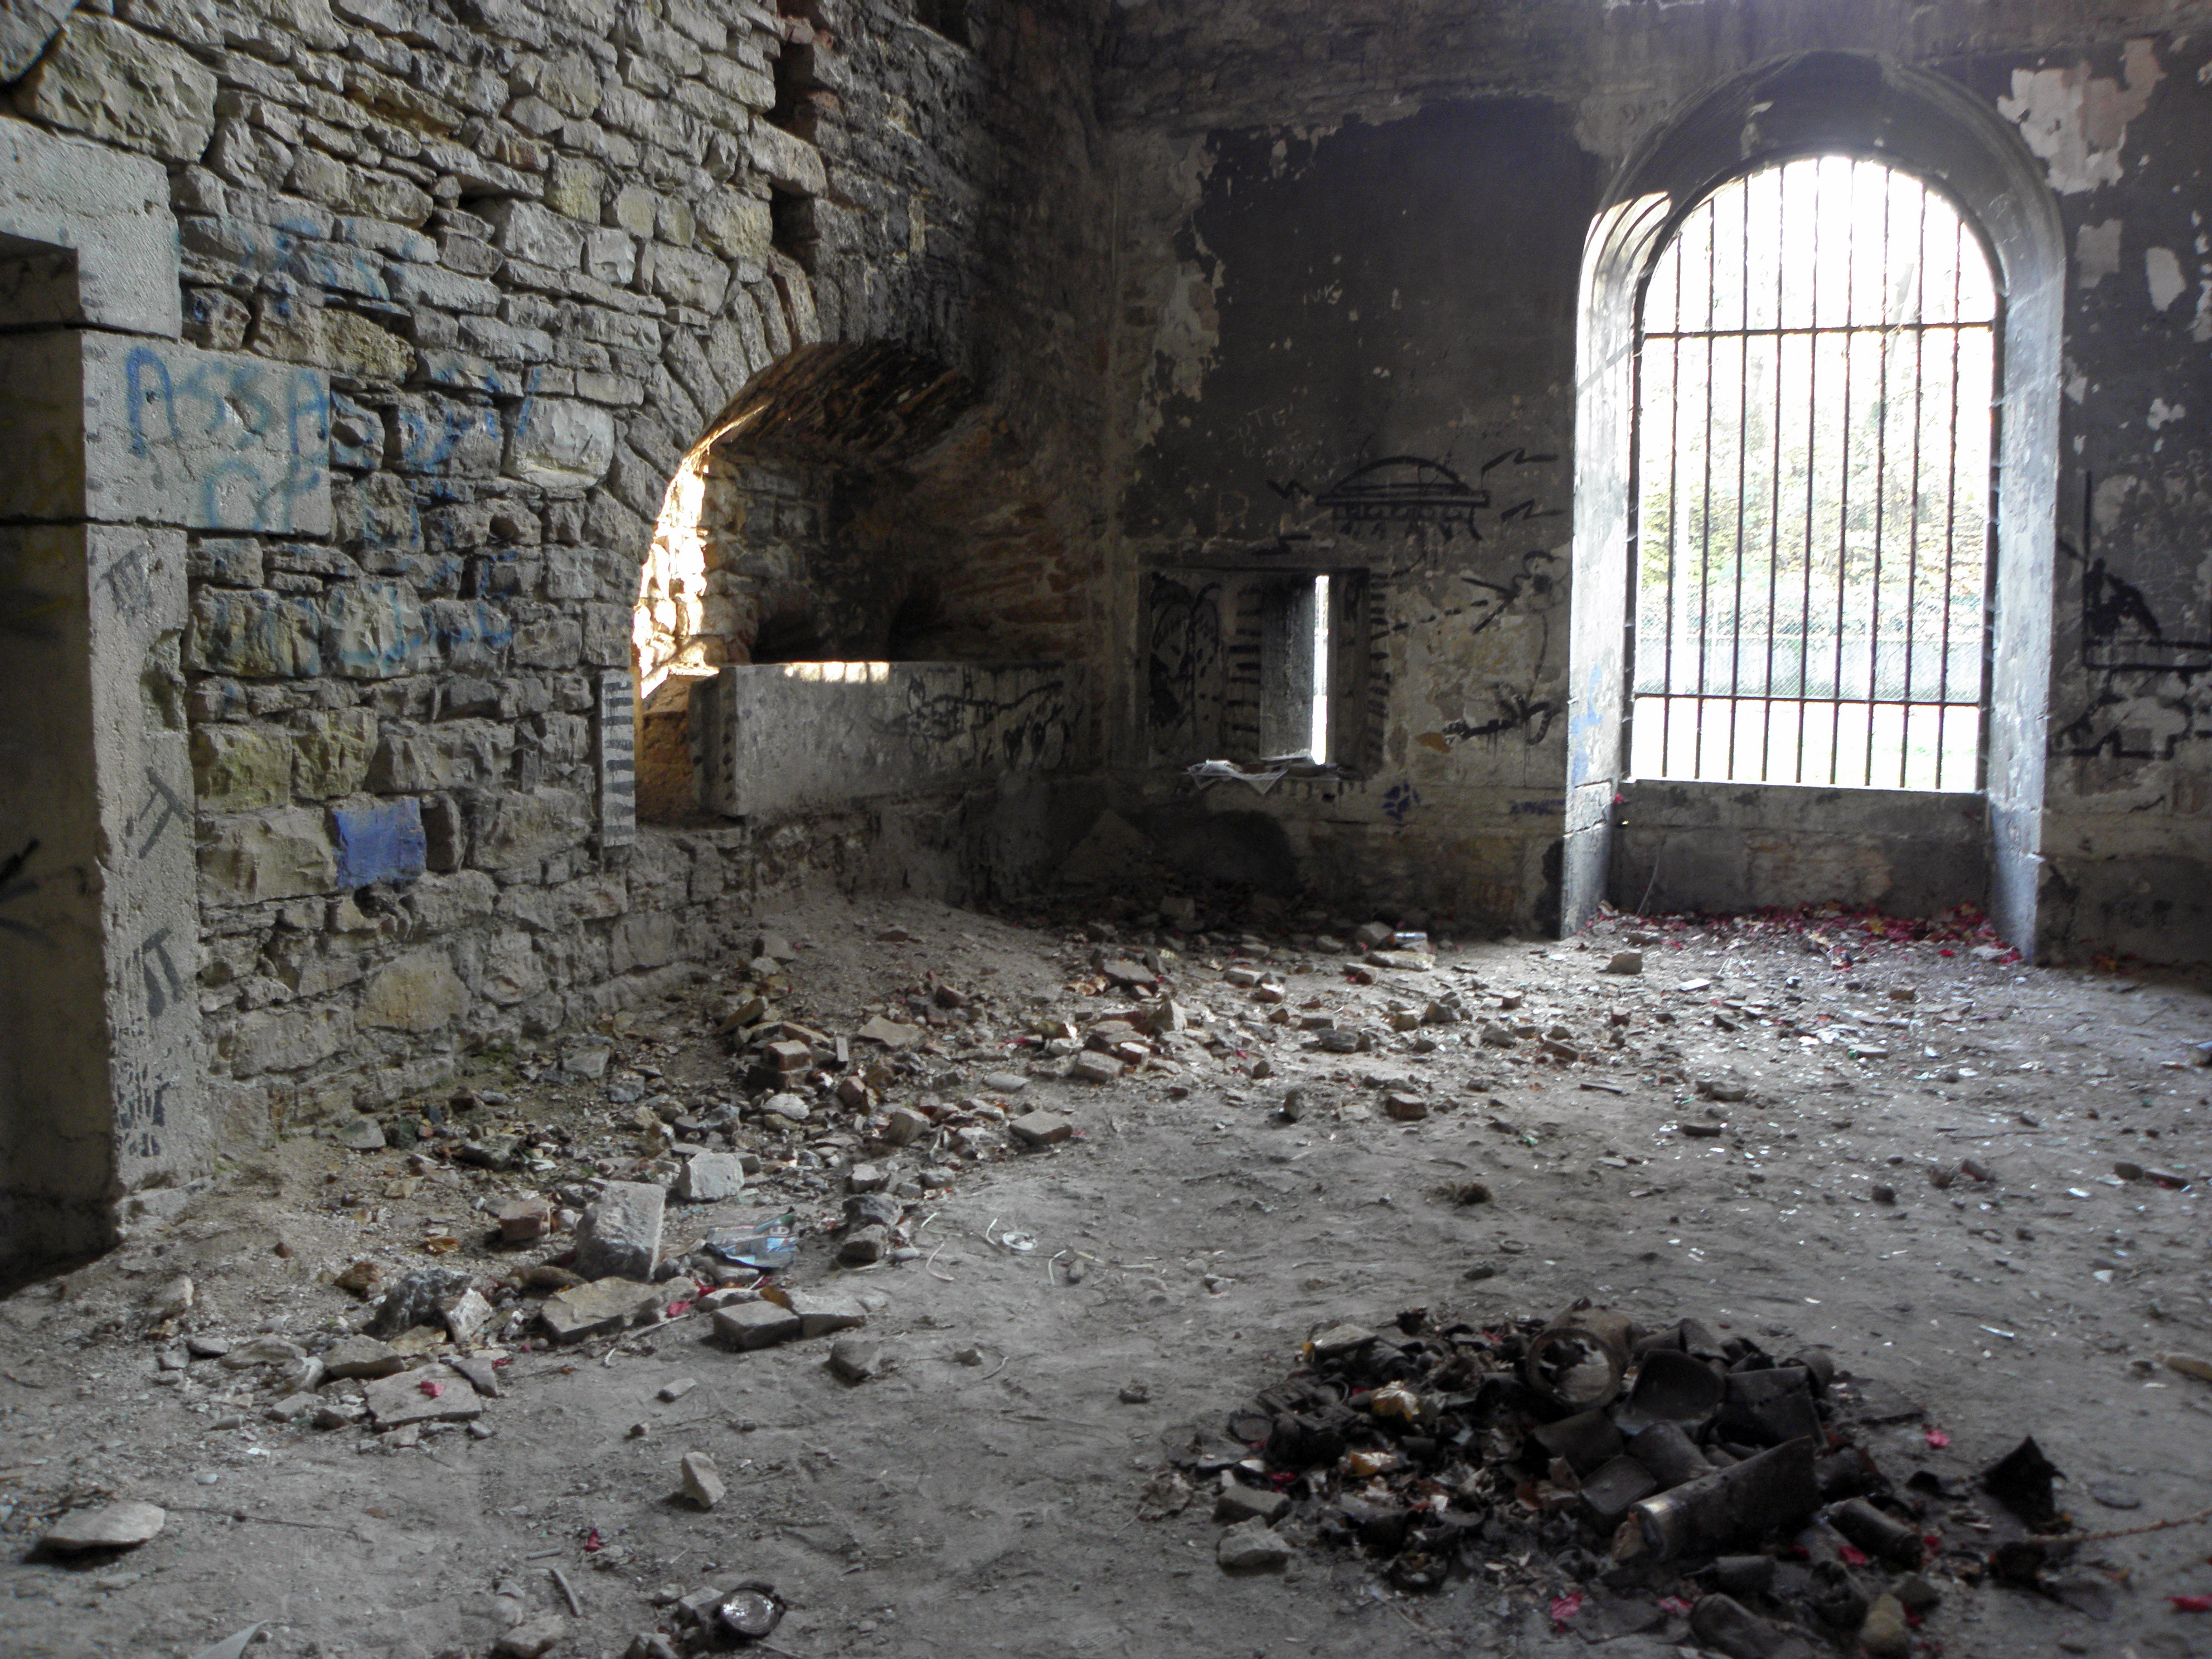 File:Interieur sud fort Loyasse.jpg - Wikimedia Commons